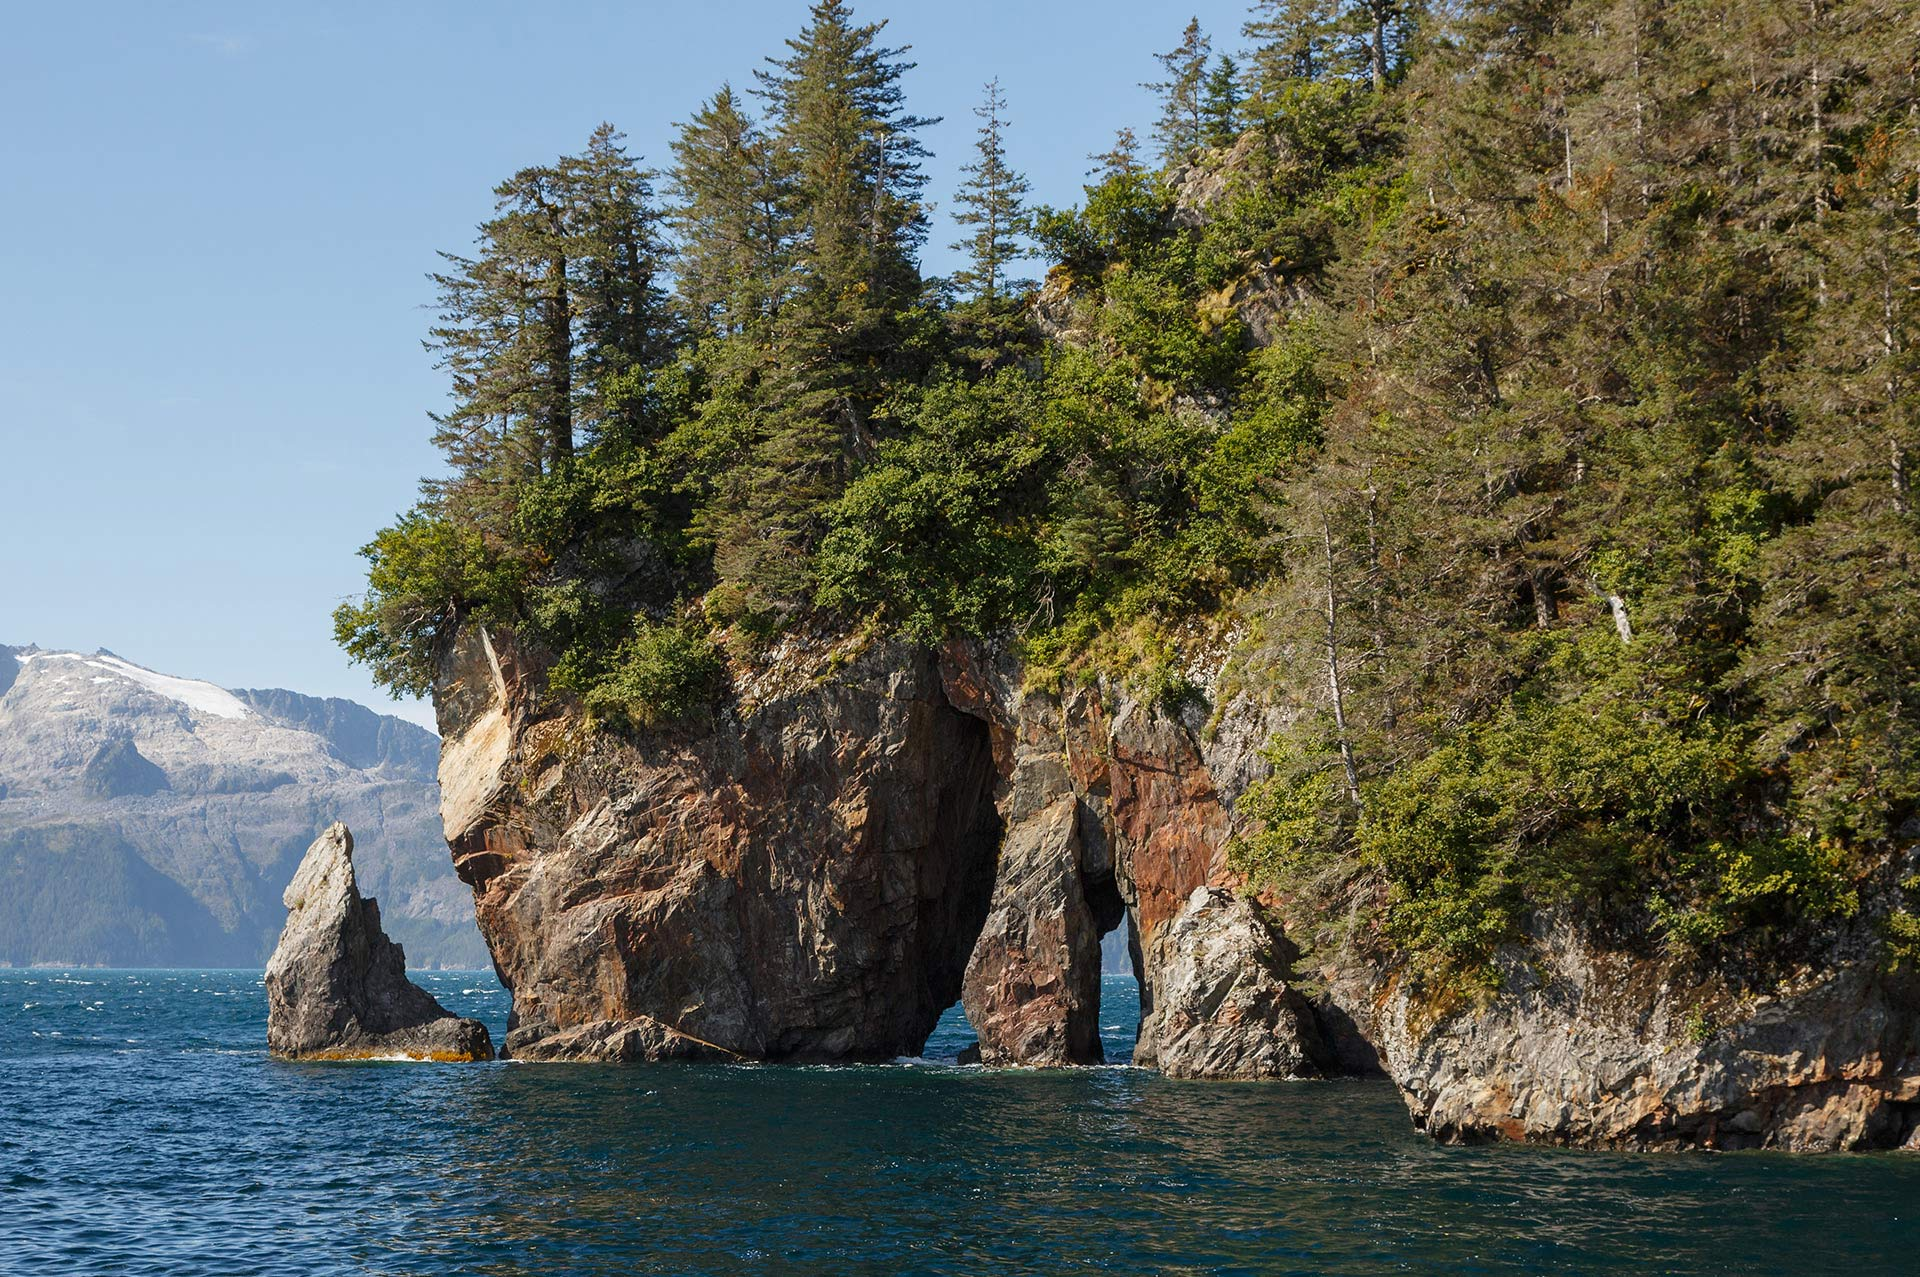 Yacht Charter Alaska Three Hole Point Rock Formation Aialik Bay in Kenai Fjords National Park